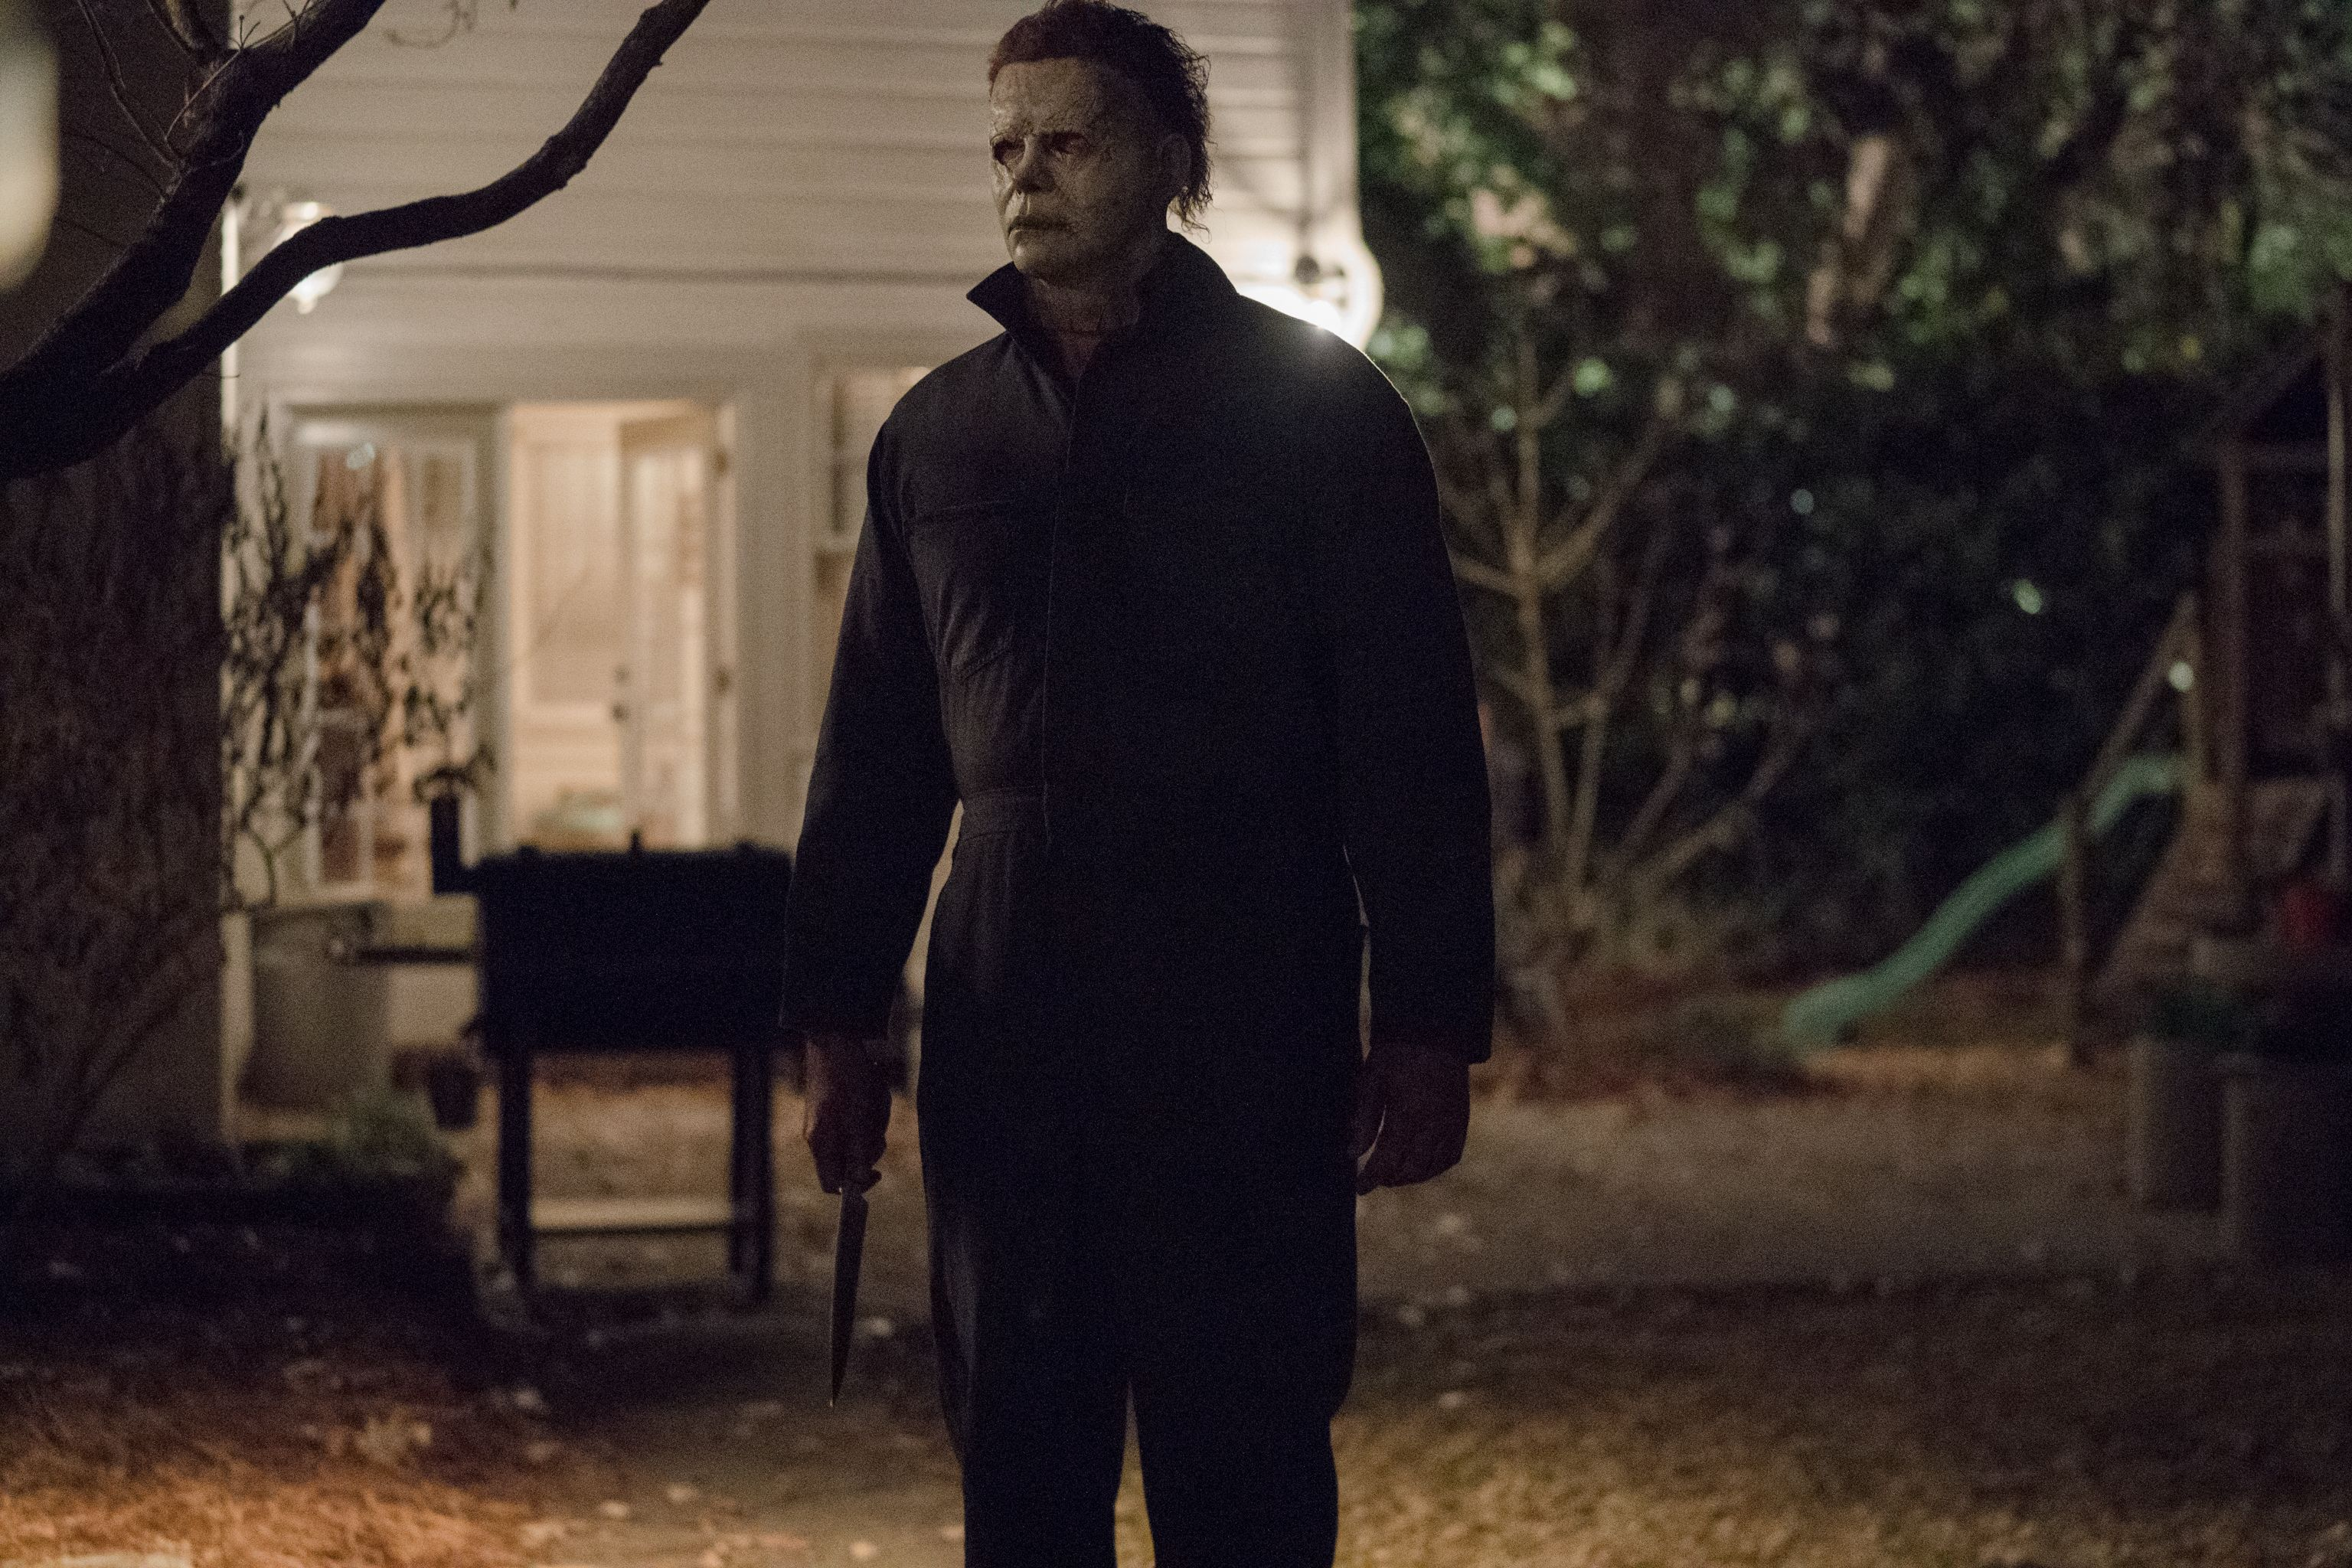 Halloween 2020 Take Place After Halloween 2 Halloween 2 Preps for Fall Shoot, 2020 Release; Laurie Strode to